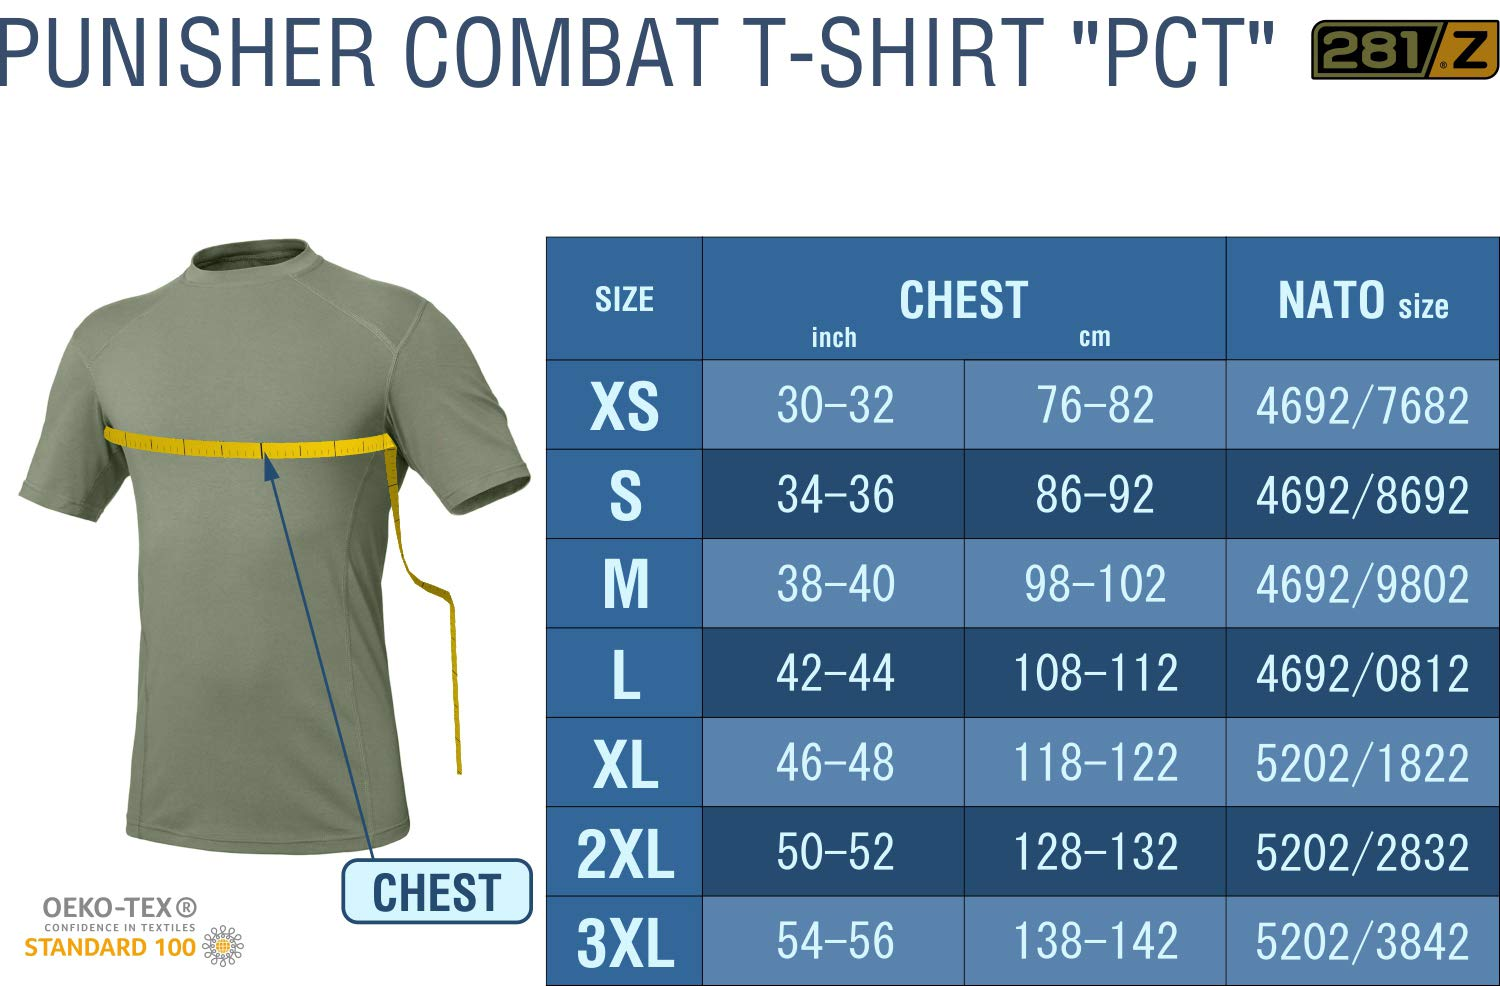 281Z Military Stretch Cotton Underwear T-Shirt - Tactical Hiking Outdoor - Punisher Combat Line (Olive Drab, Large) by 281Z (Image #6)